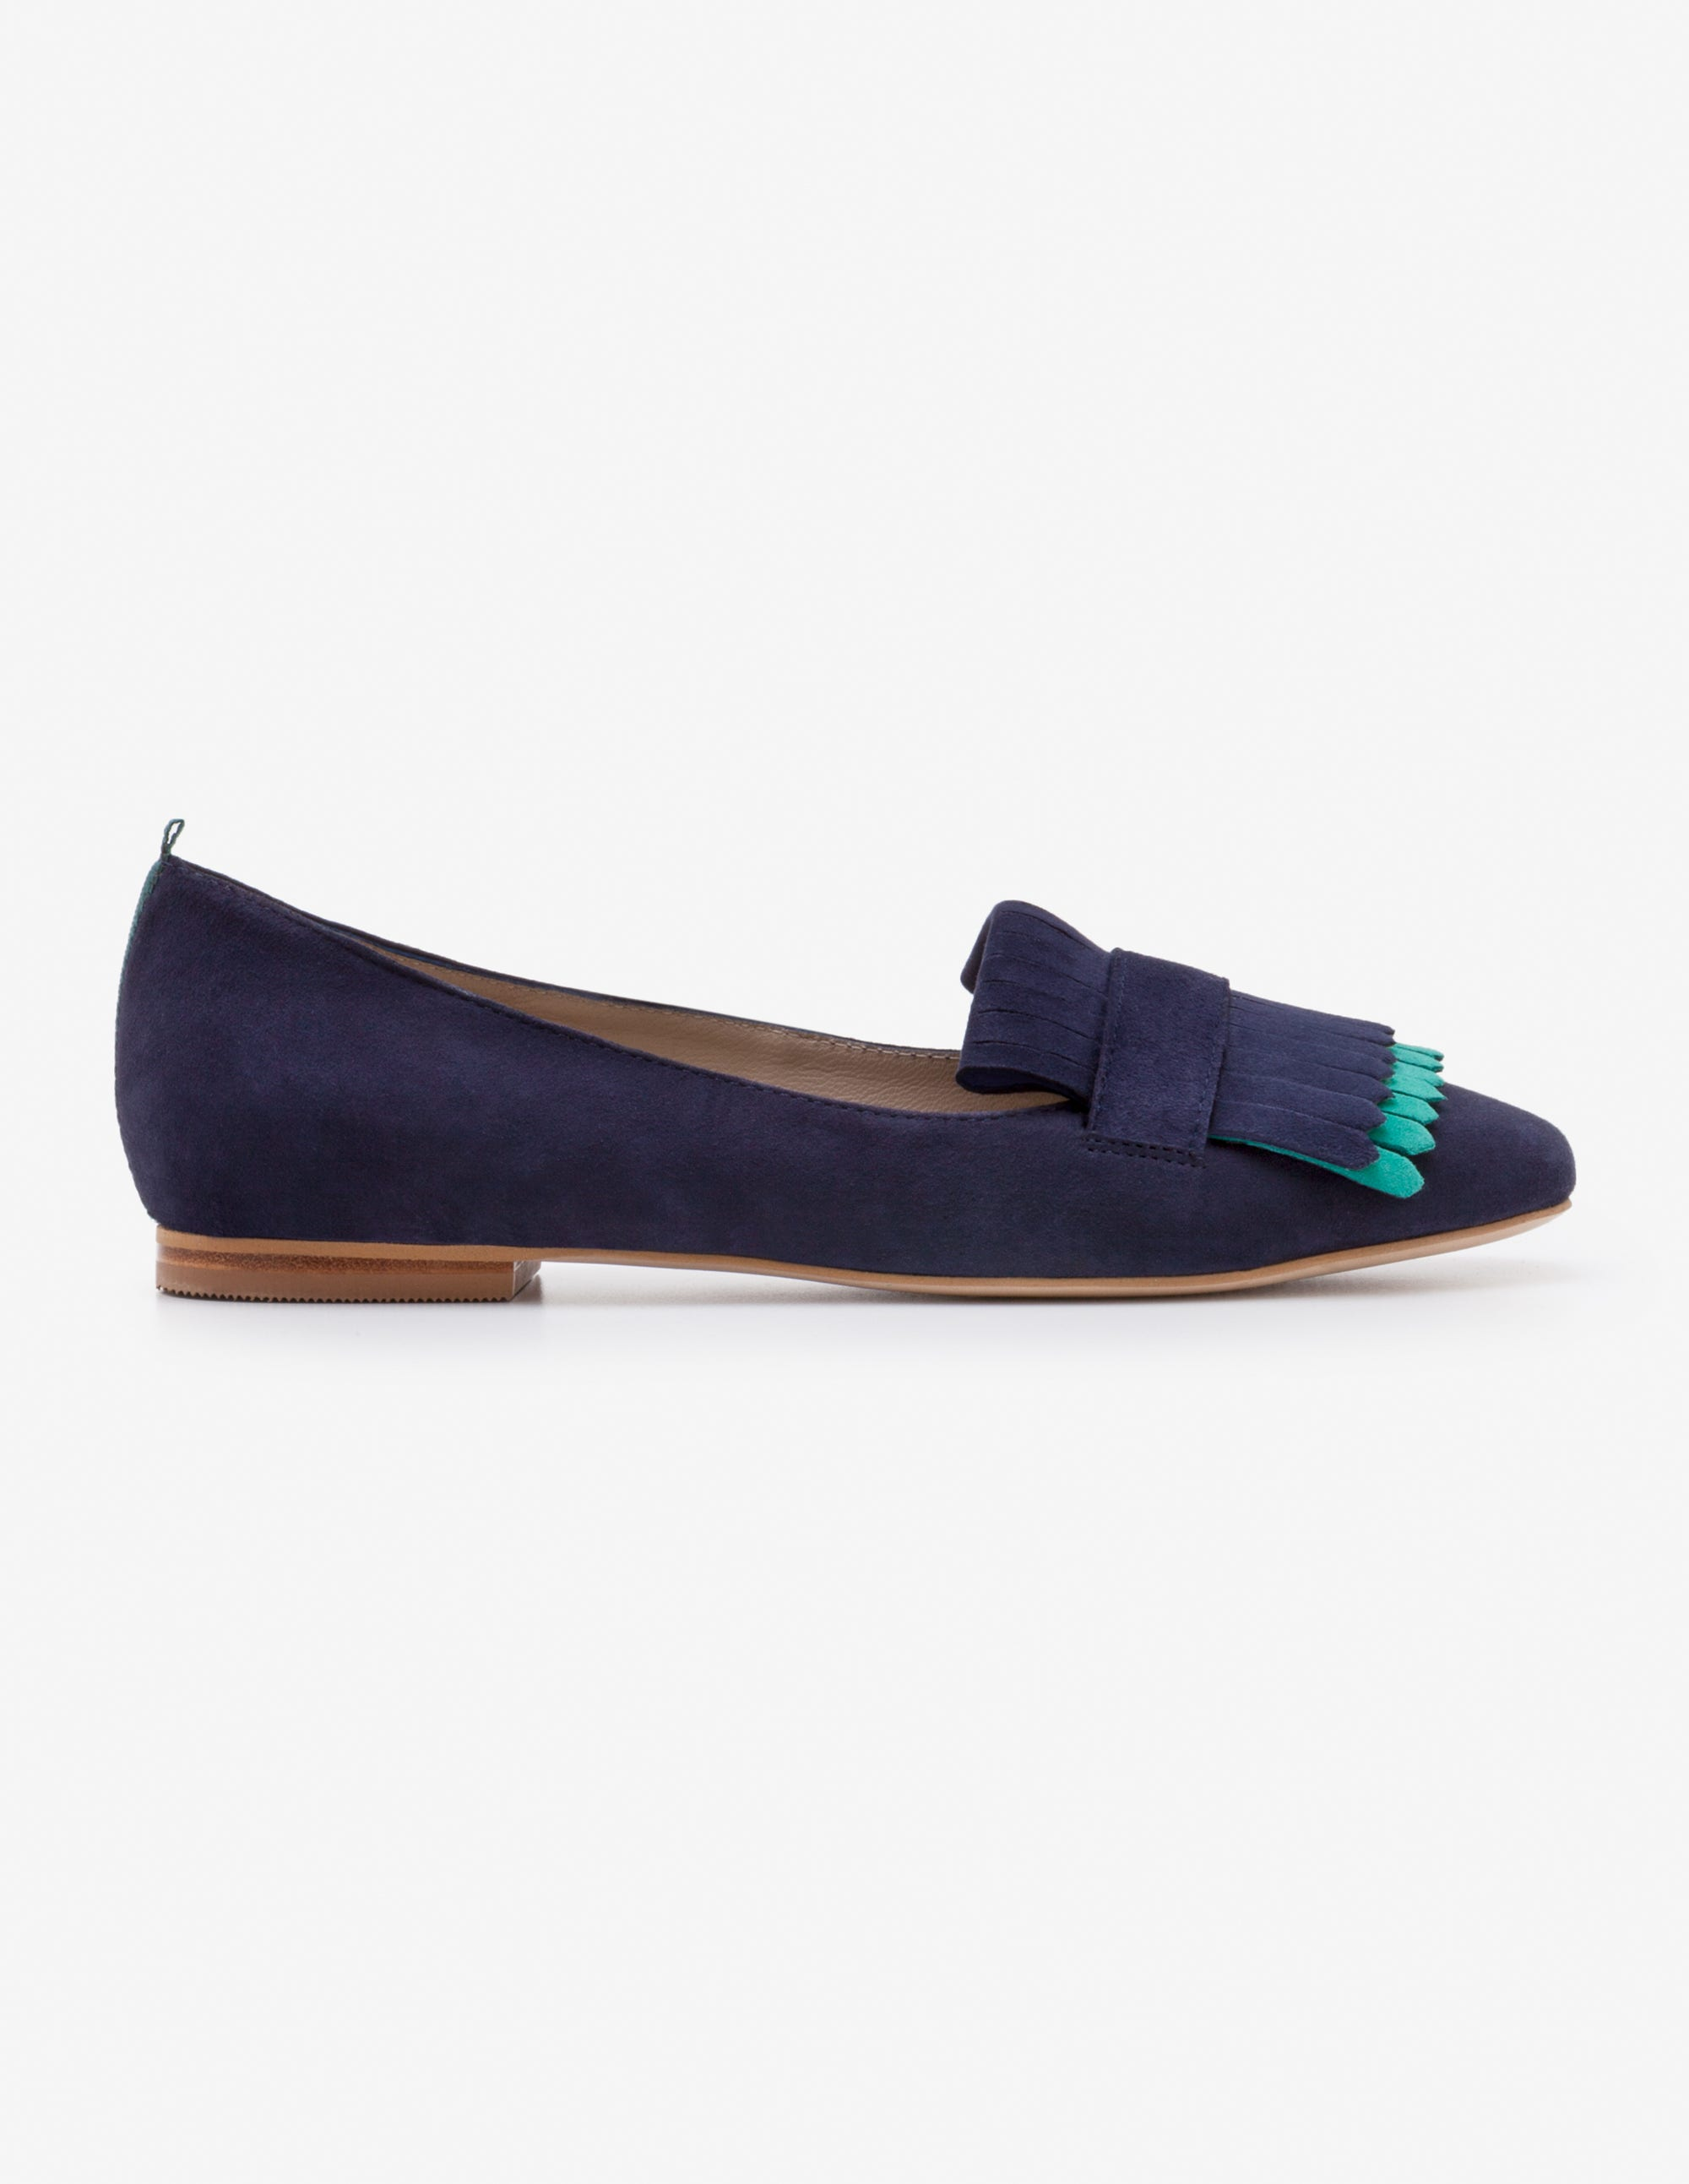 46f07980c6b Melody Loafers - Black with Pewter